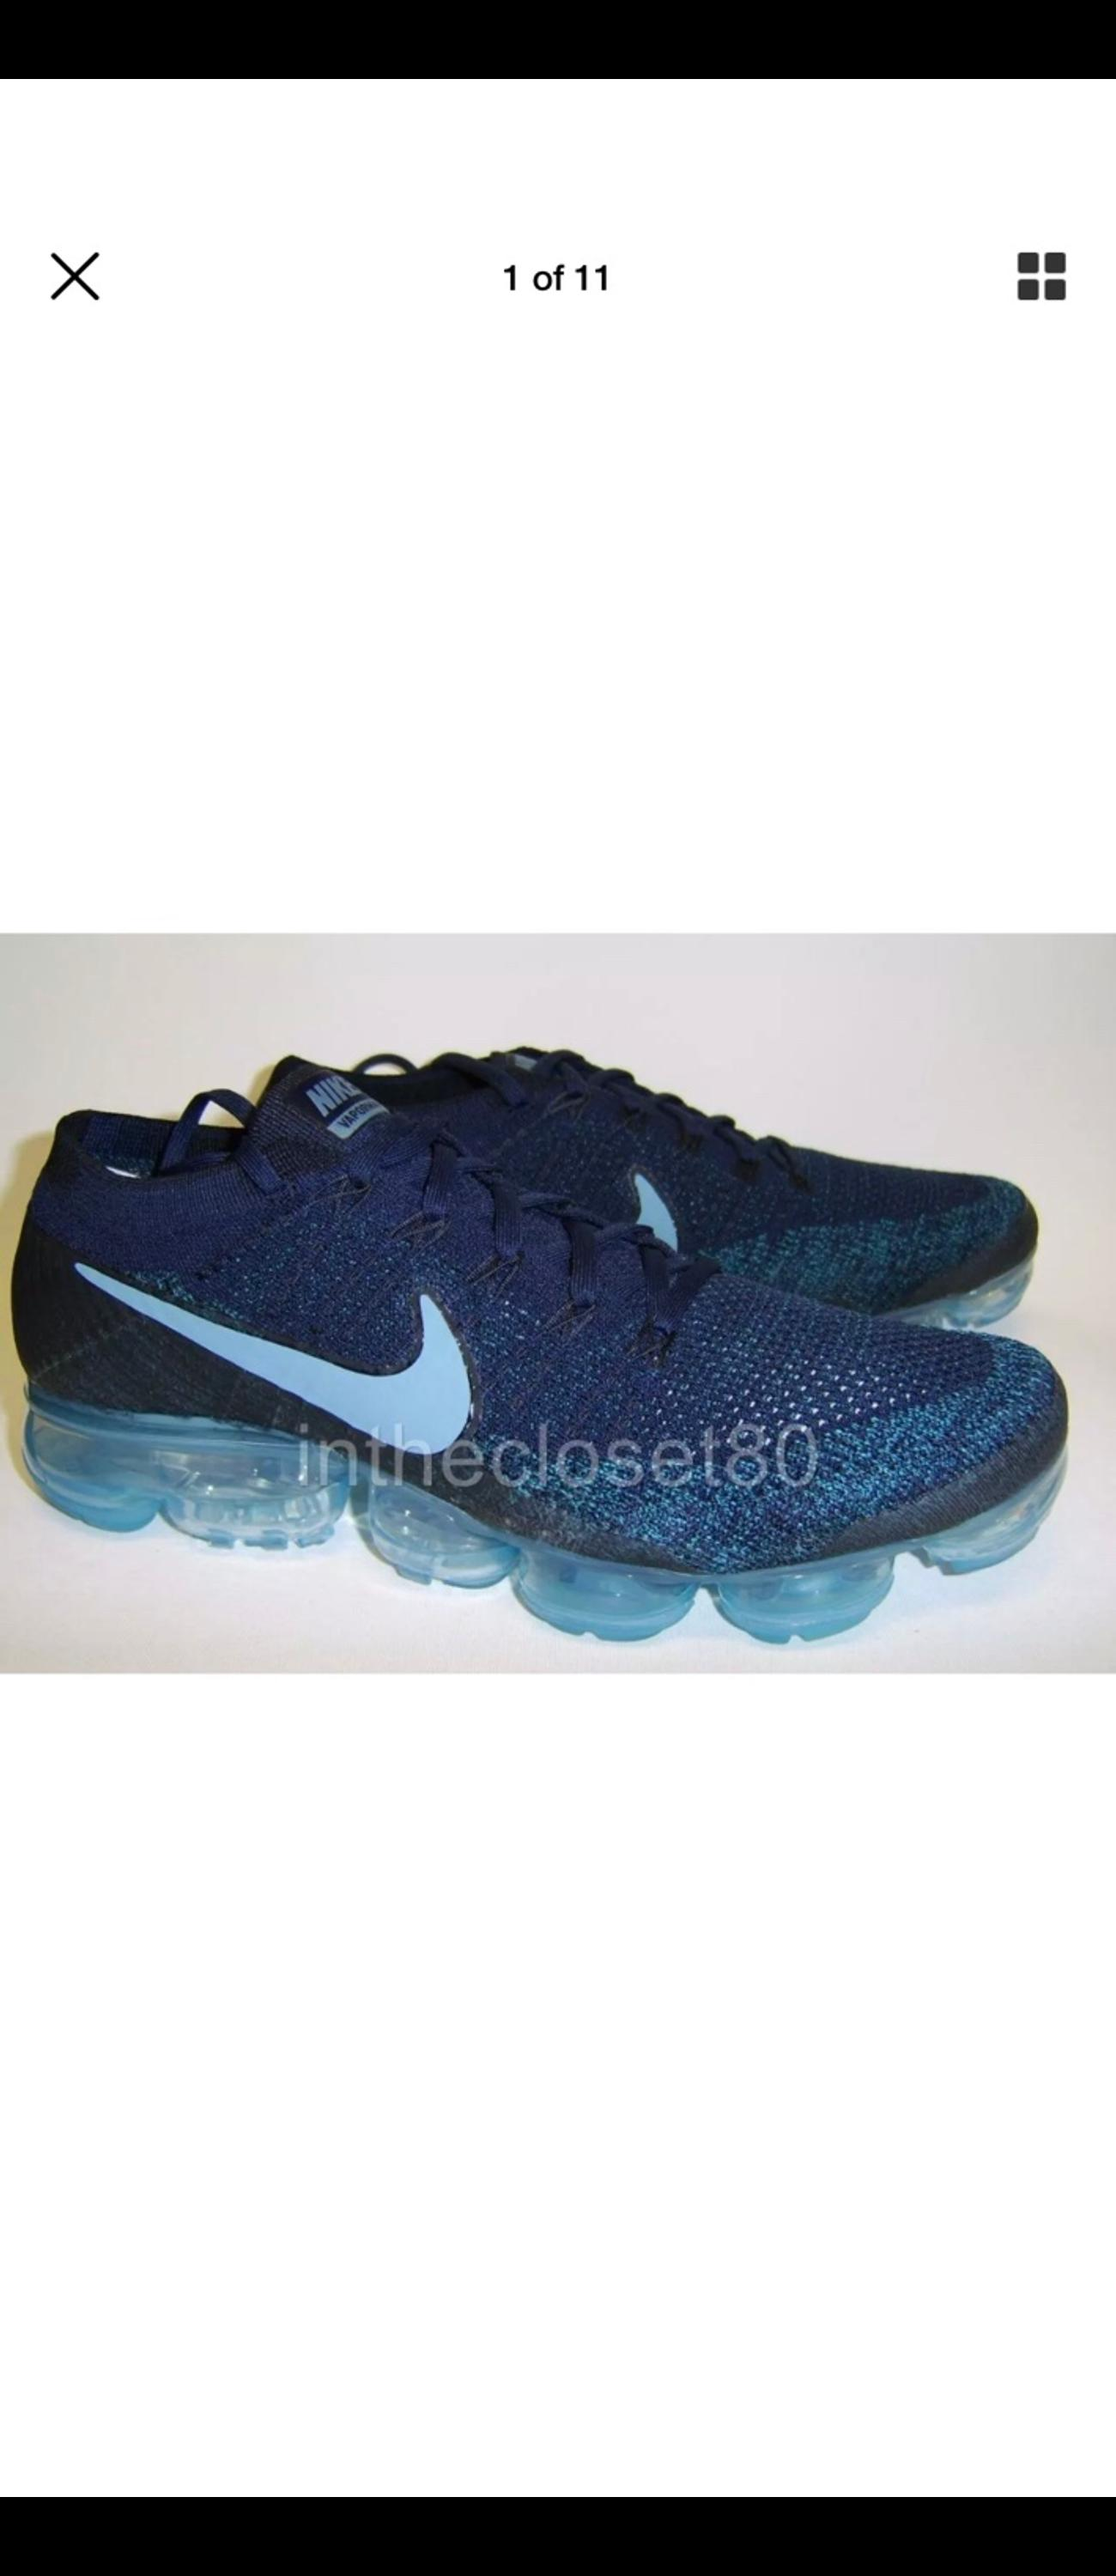 half off 2871d c6a4c Nike air vapormax flyknit Mens in E5 Hackney for £85.00 for ...